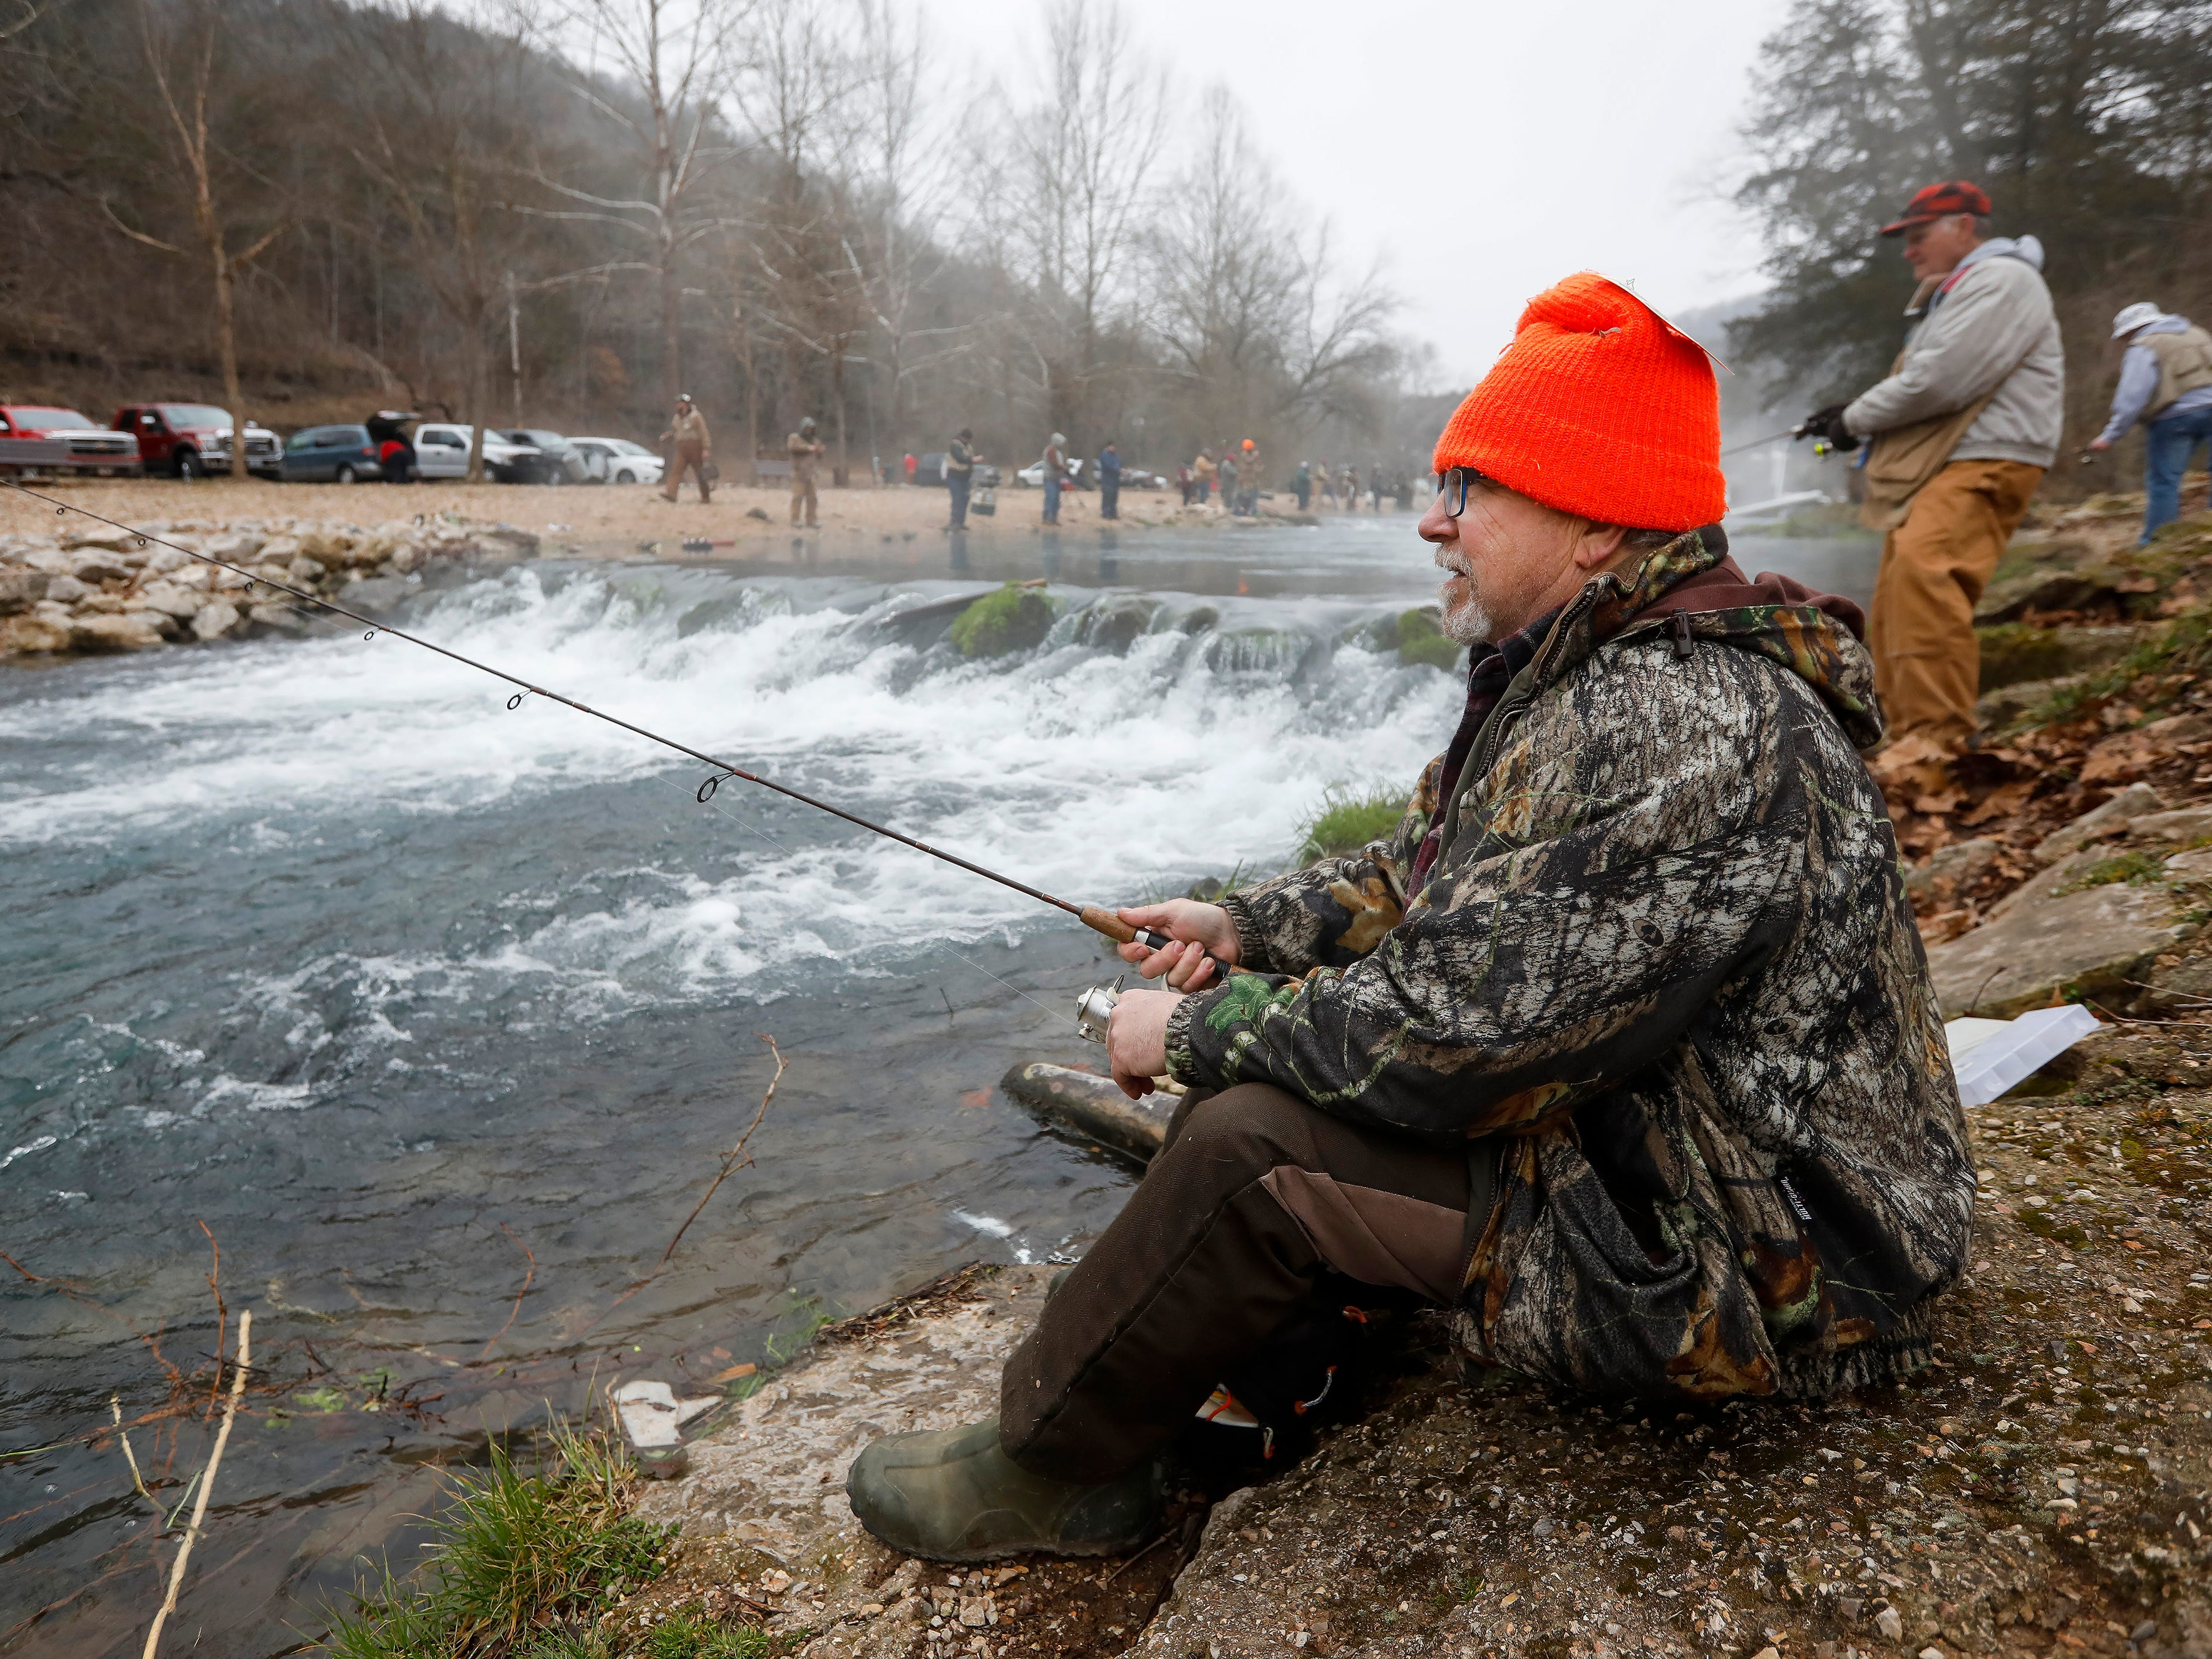 Dave Rauch, of Springfield, waits for a fish to bite on opening day of trout season at Roaring River State Park on Friday, Mar. 1, 2019.